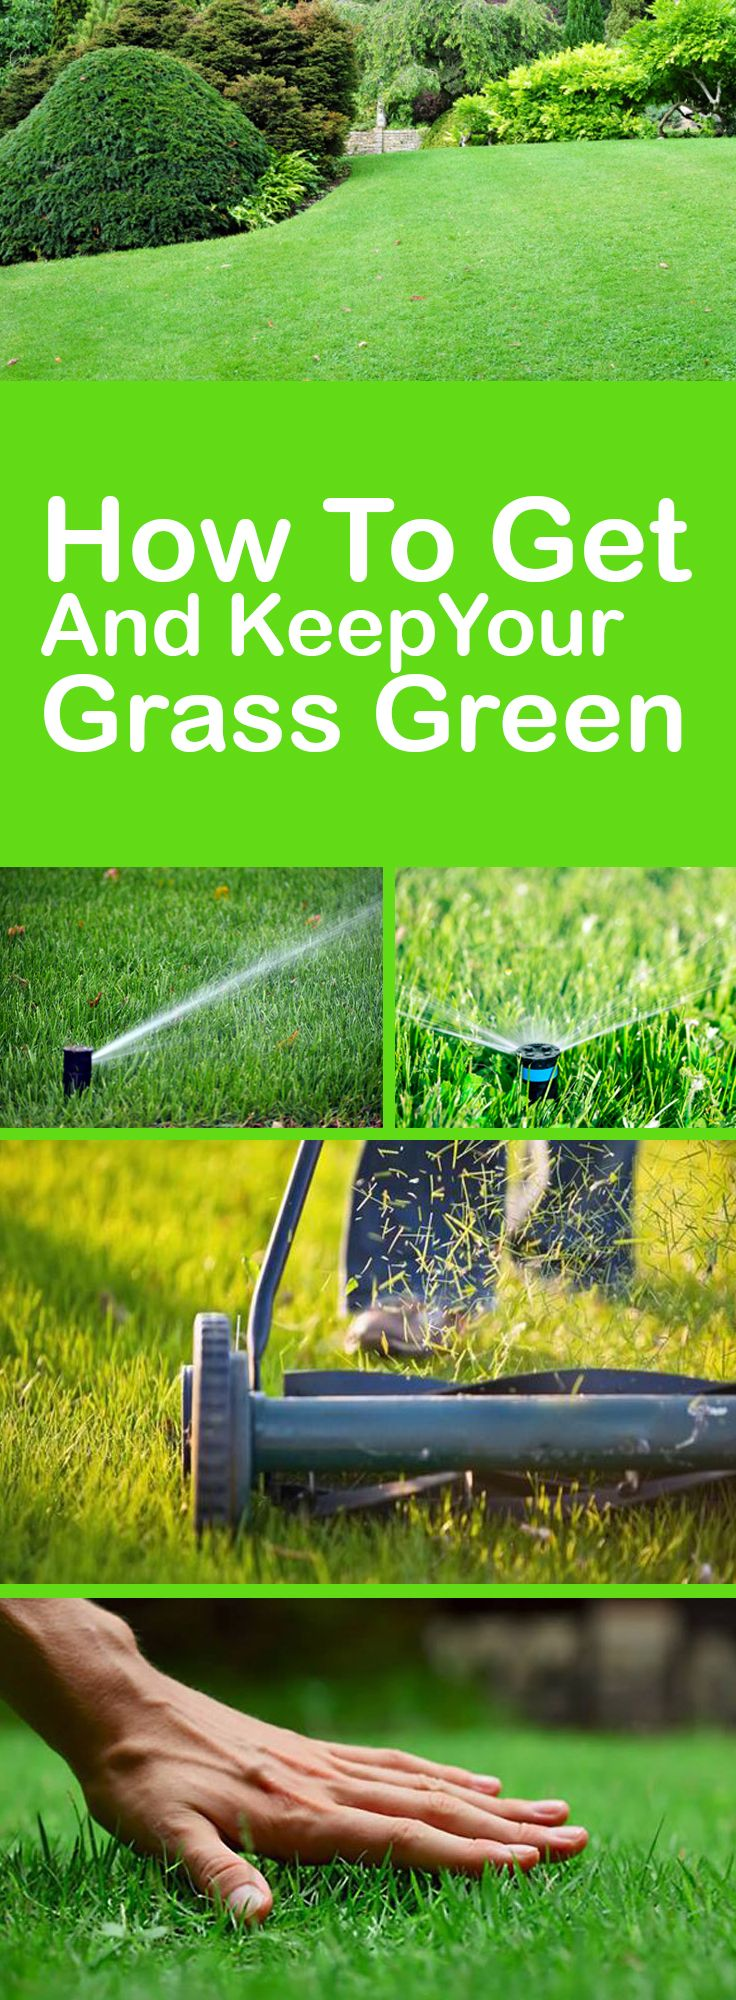 How To Get And Keep Your Grass Green